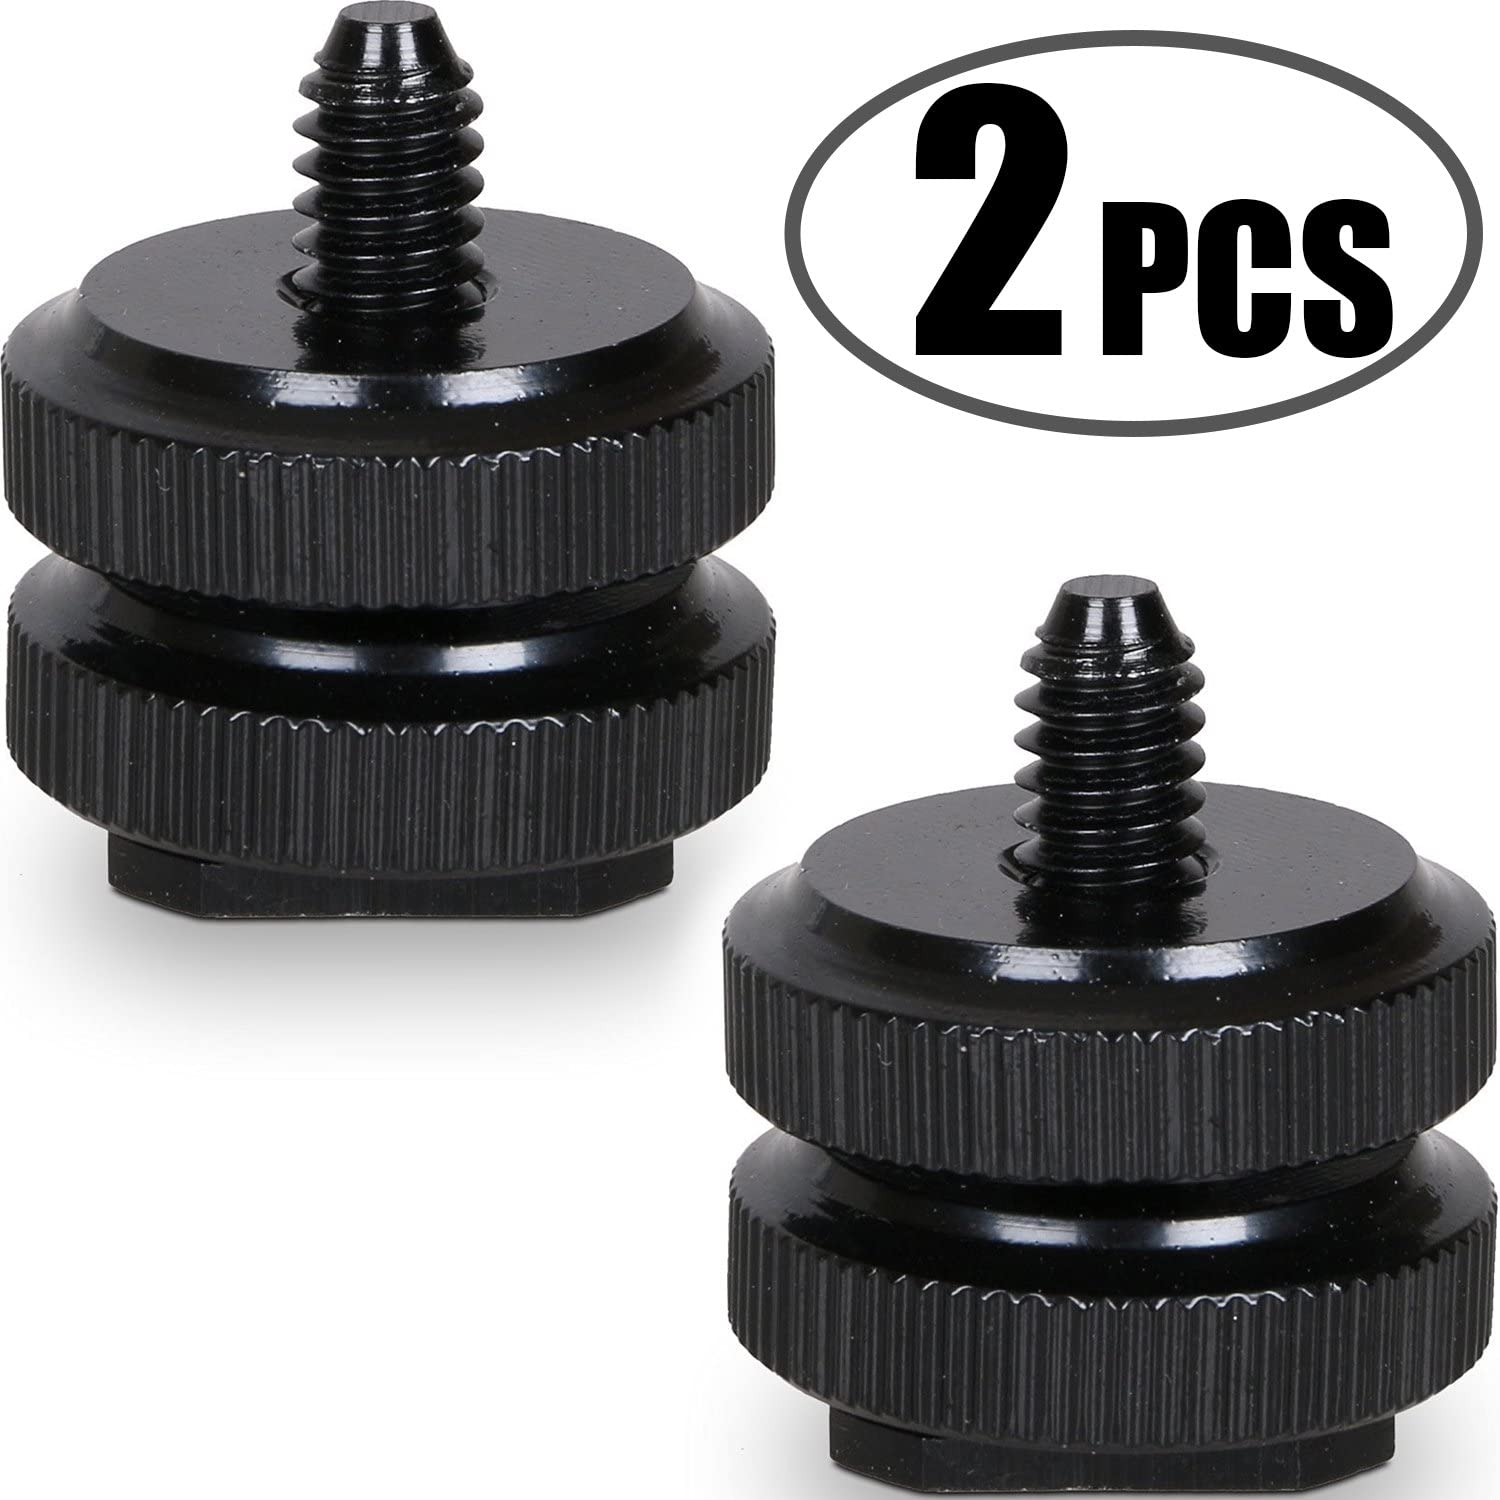 2 Packs Slow Dolphin 1//4 Inch Hot Shoe Mount Adapter Tripod Screw for DSLR Camera Rig